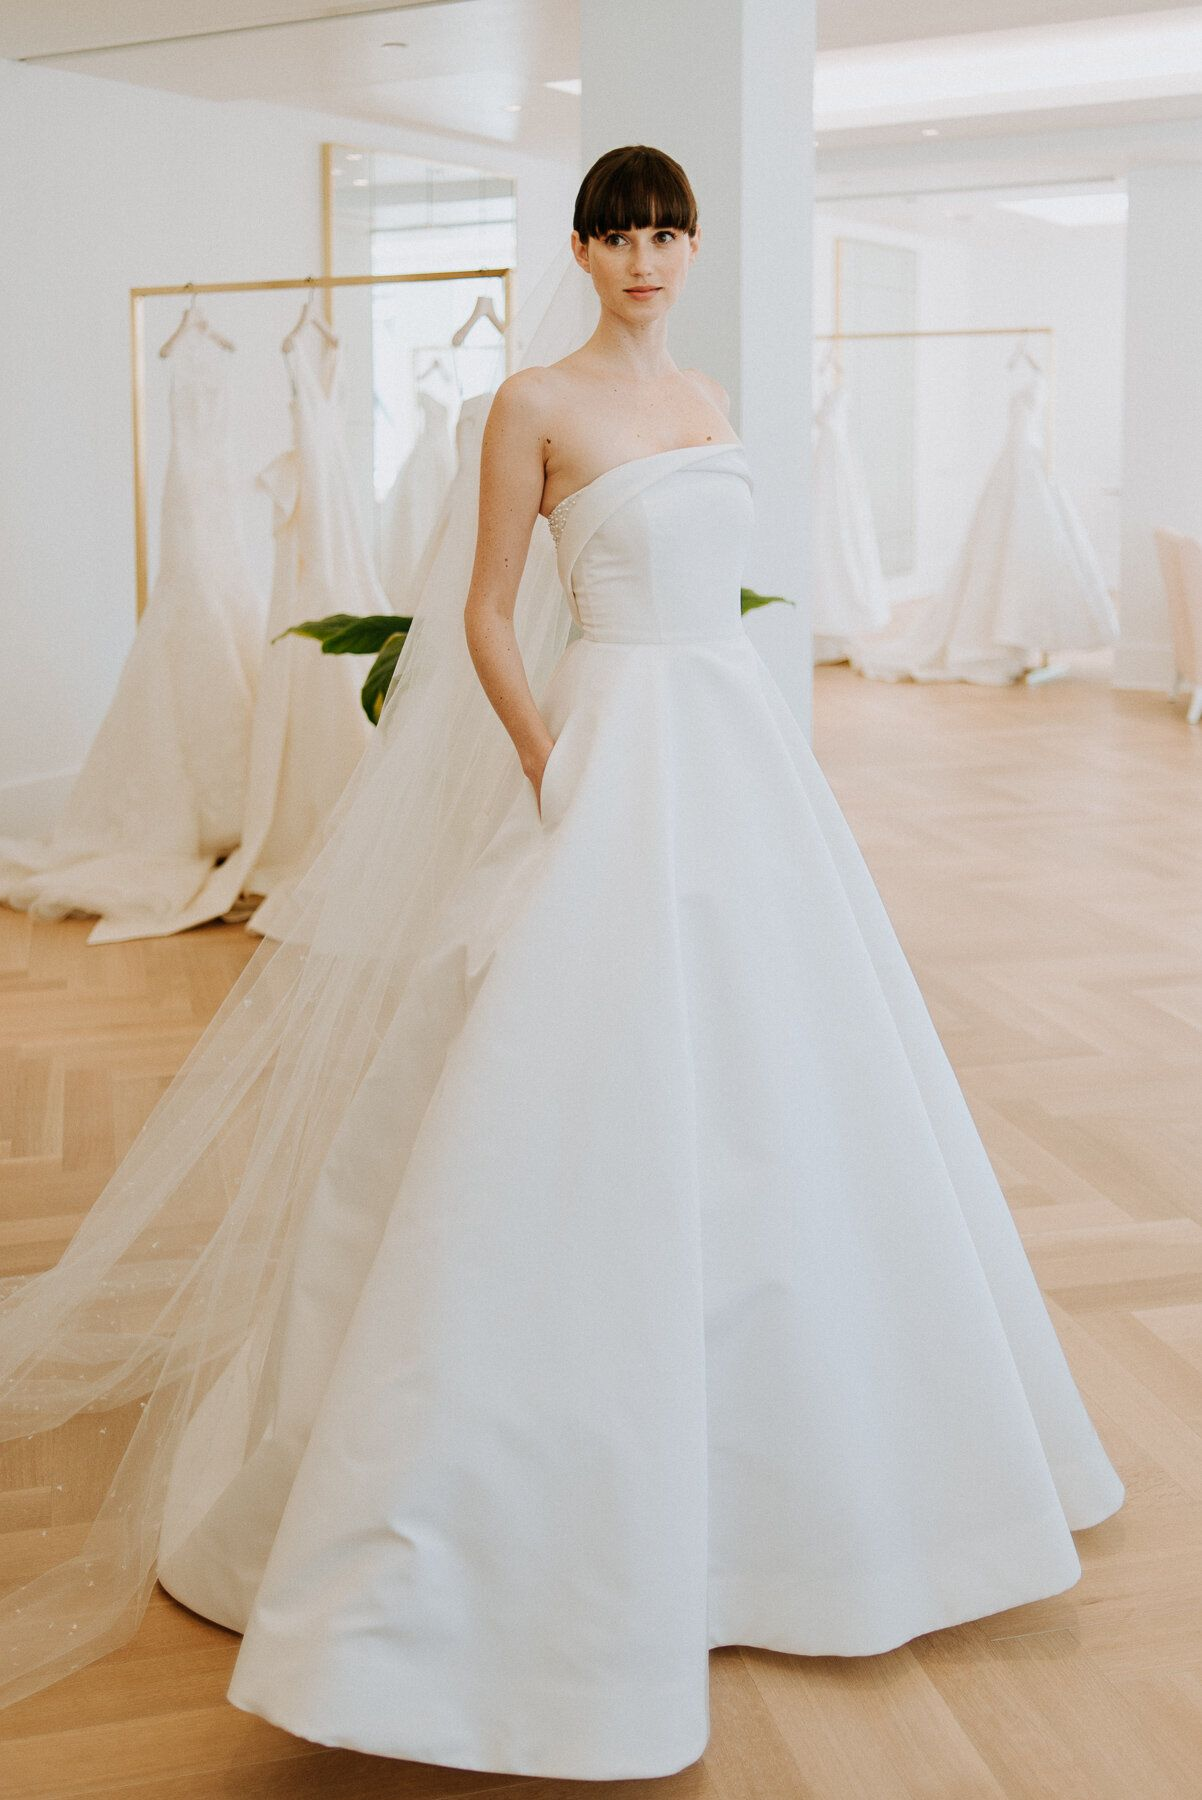 Carolina Herrera Fall 2020 - Michaela - $9,990 #bridalshops